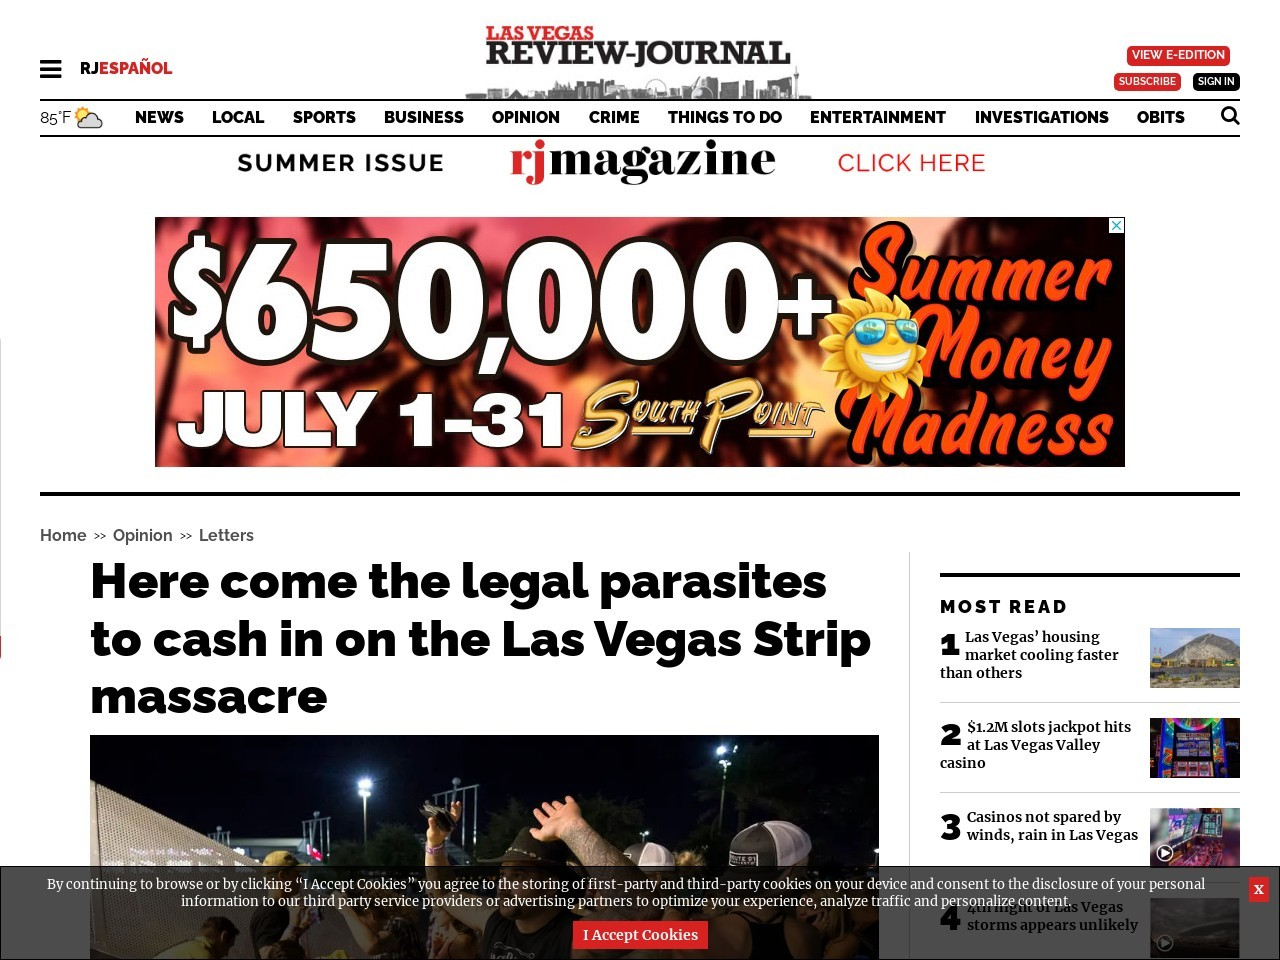 Here come the legal parasites to cash in on the Las Vegas Strip massacre